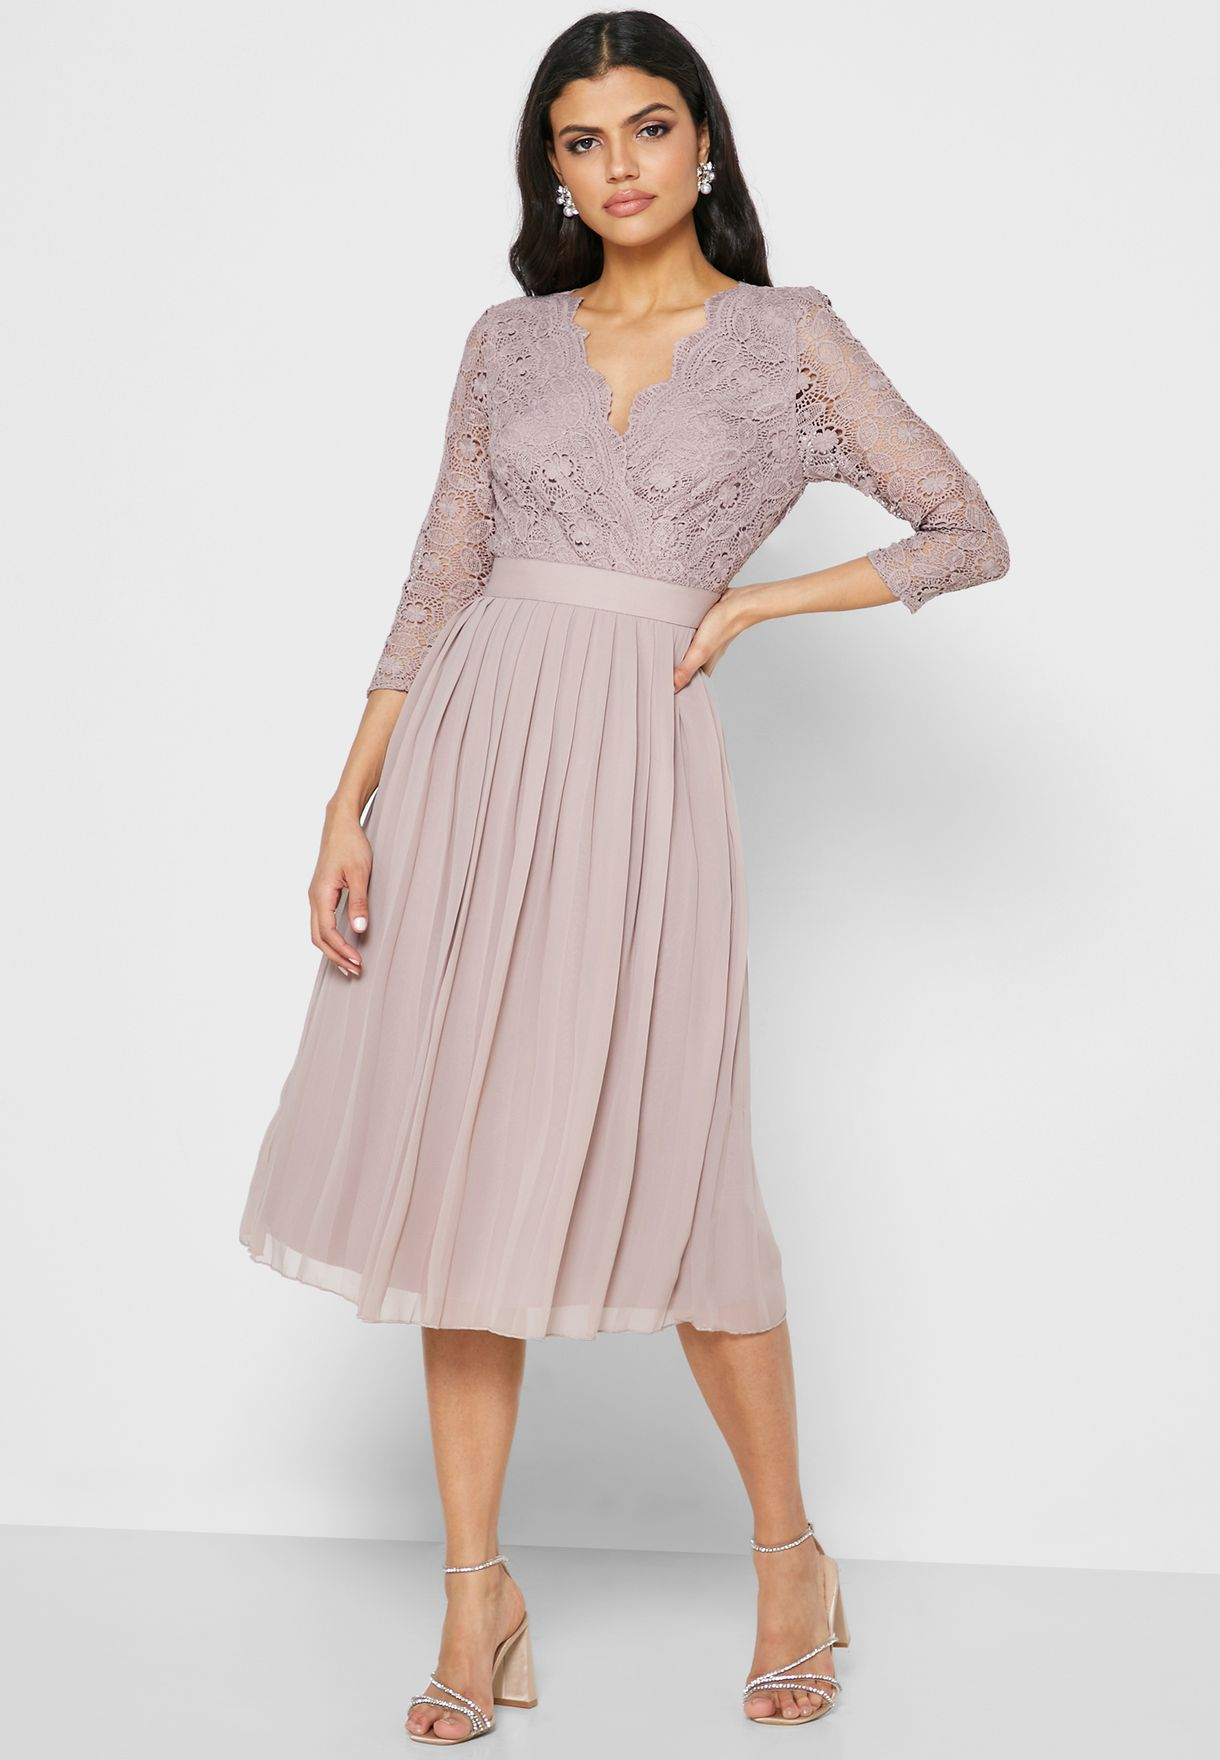 Sheer Sleeve Lace Pleated Dress